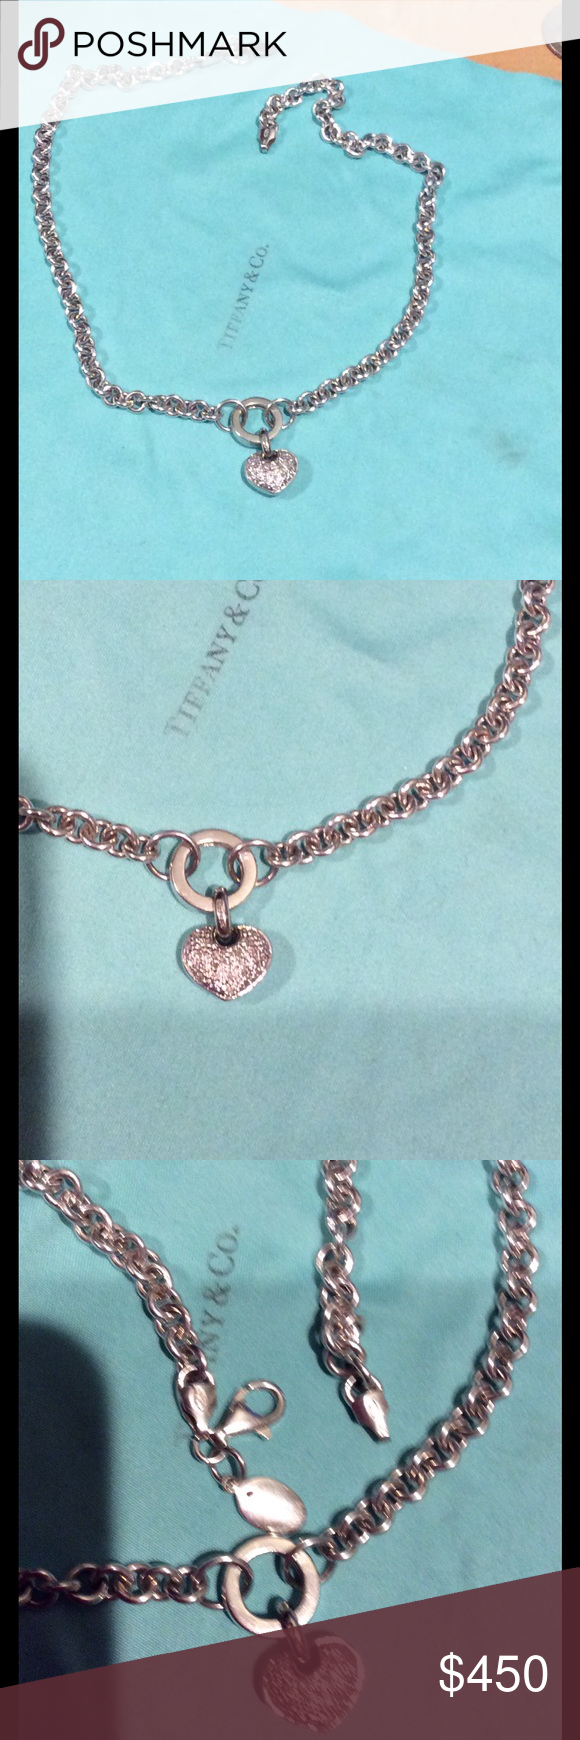 Heart Diamond Pendant in Sterling silver Chain Bought in Jared